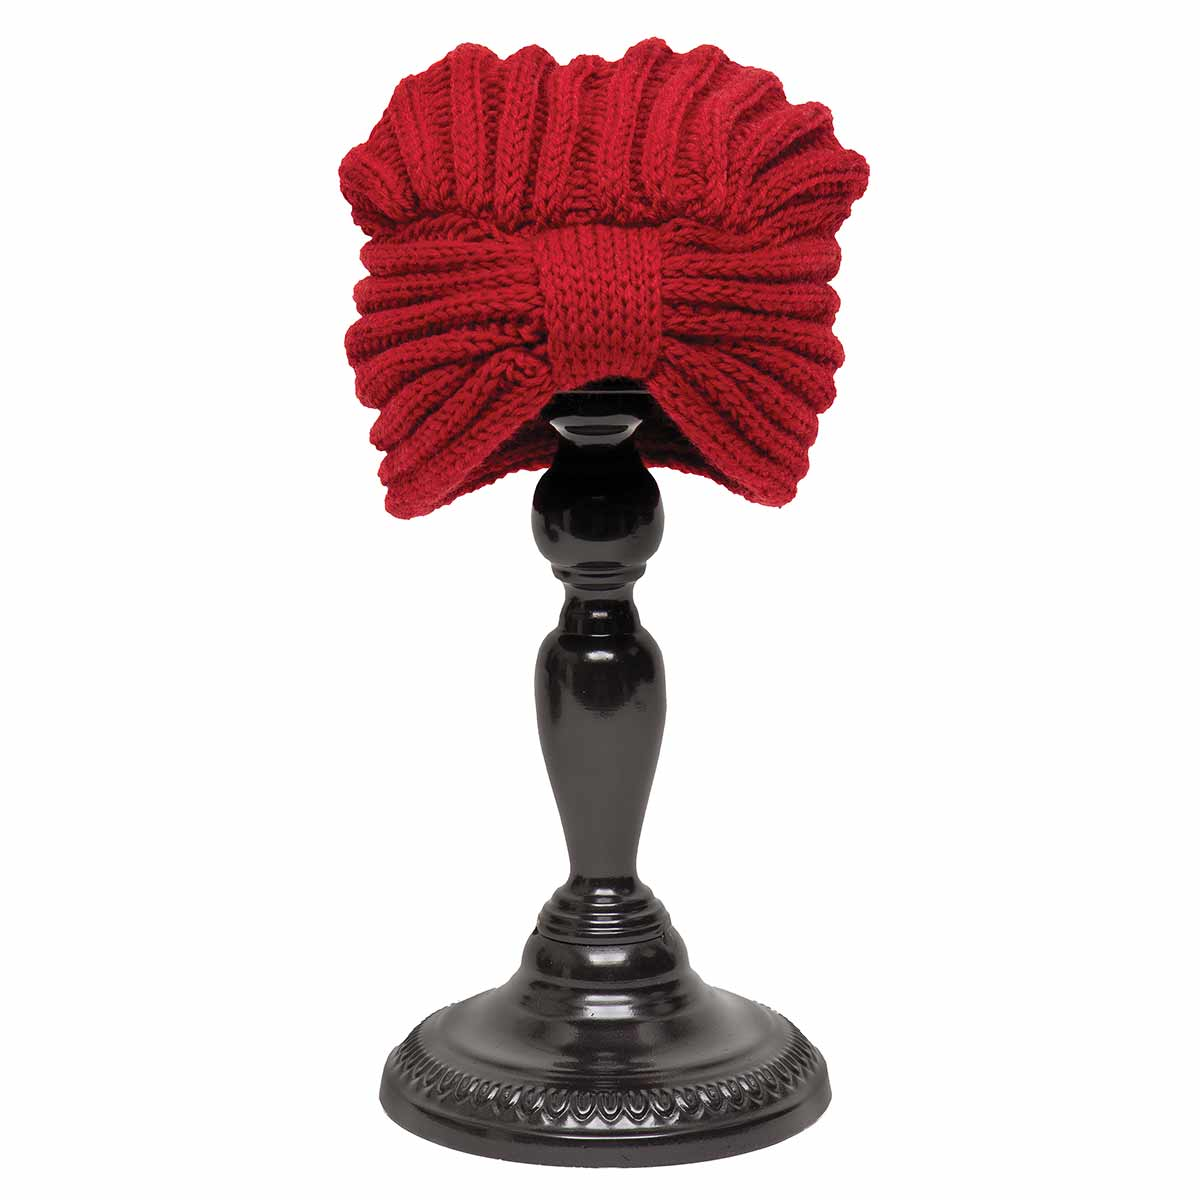 Red Knit Cloche Hat with Band